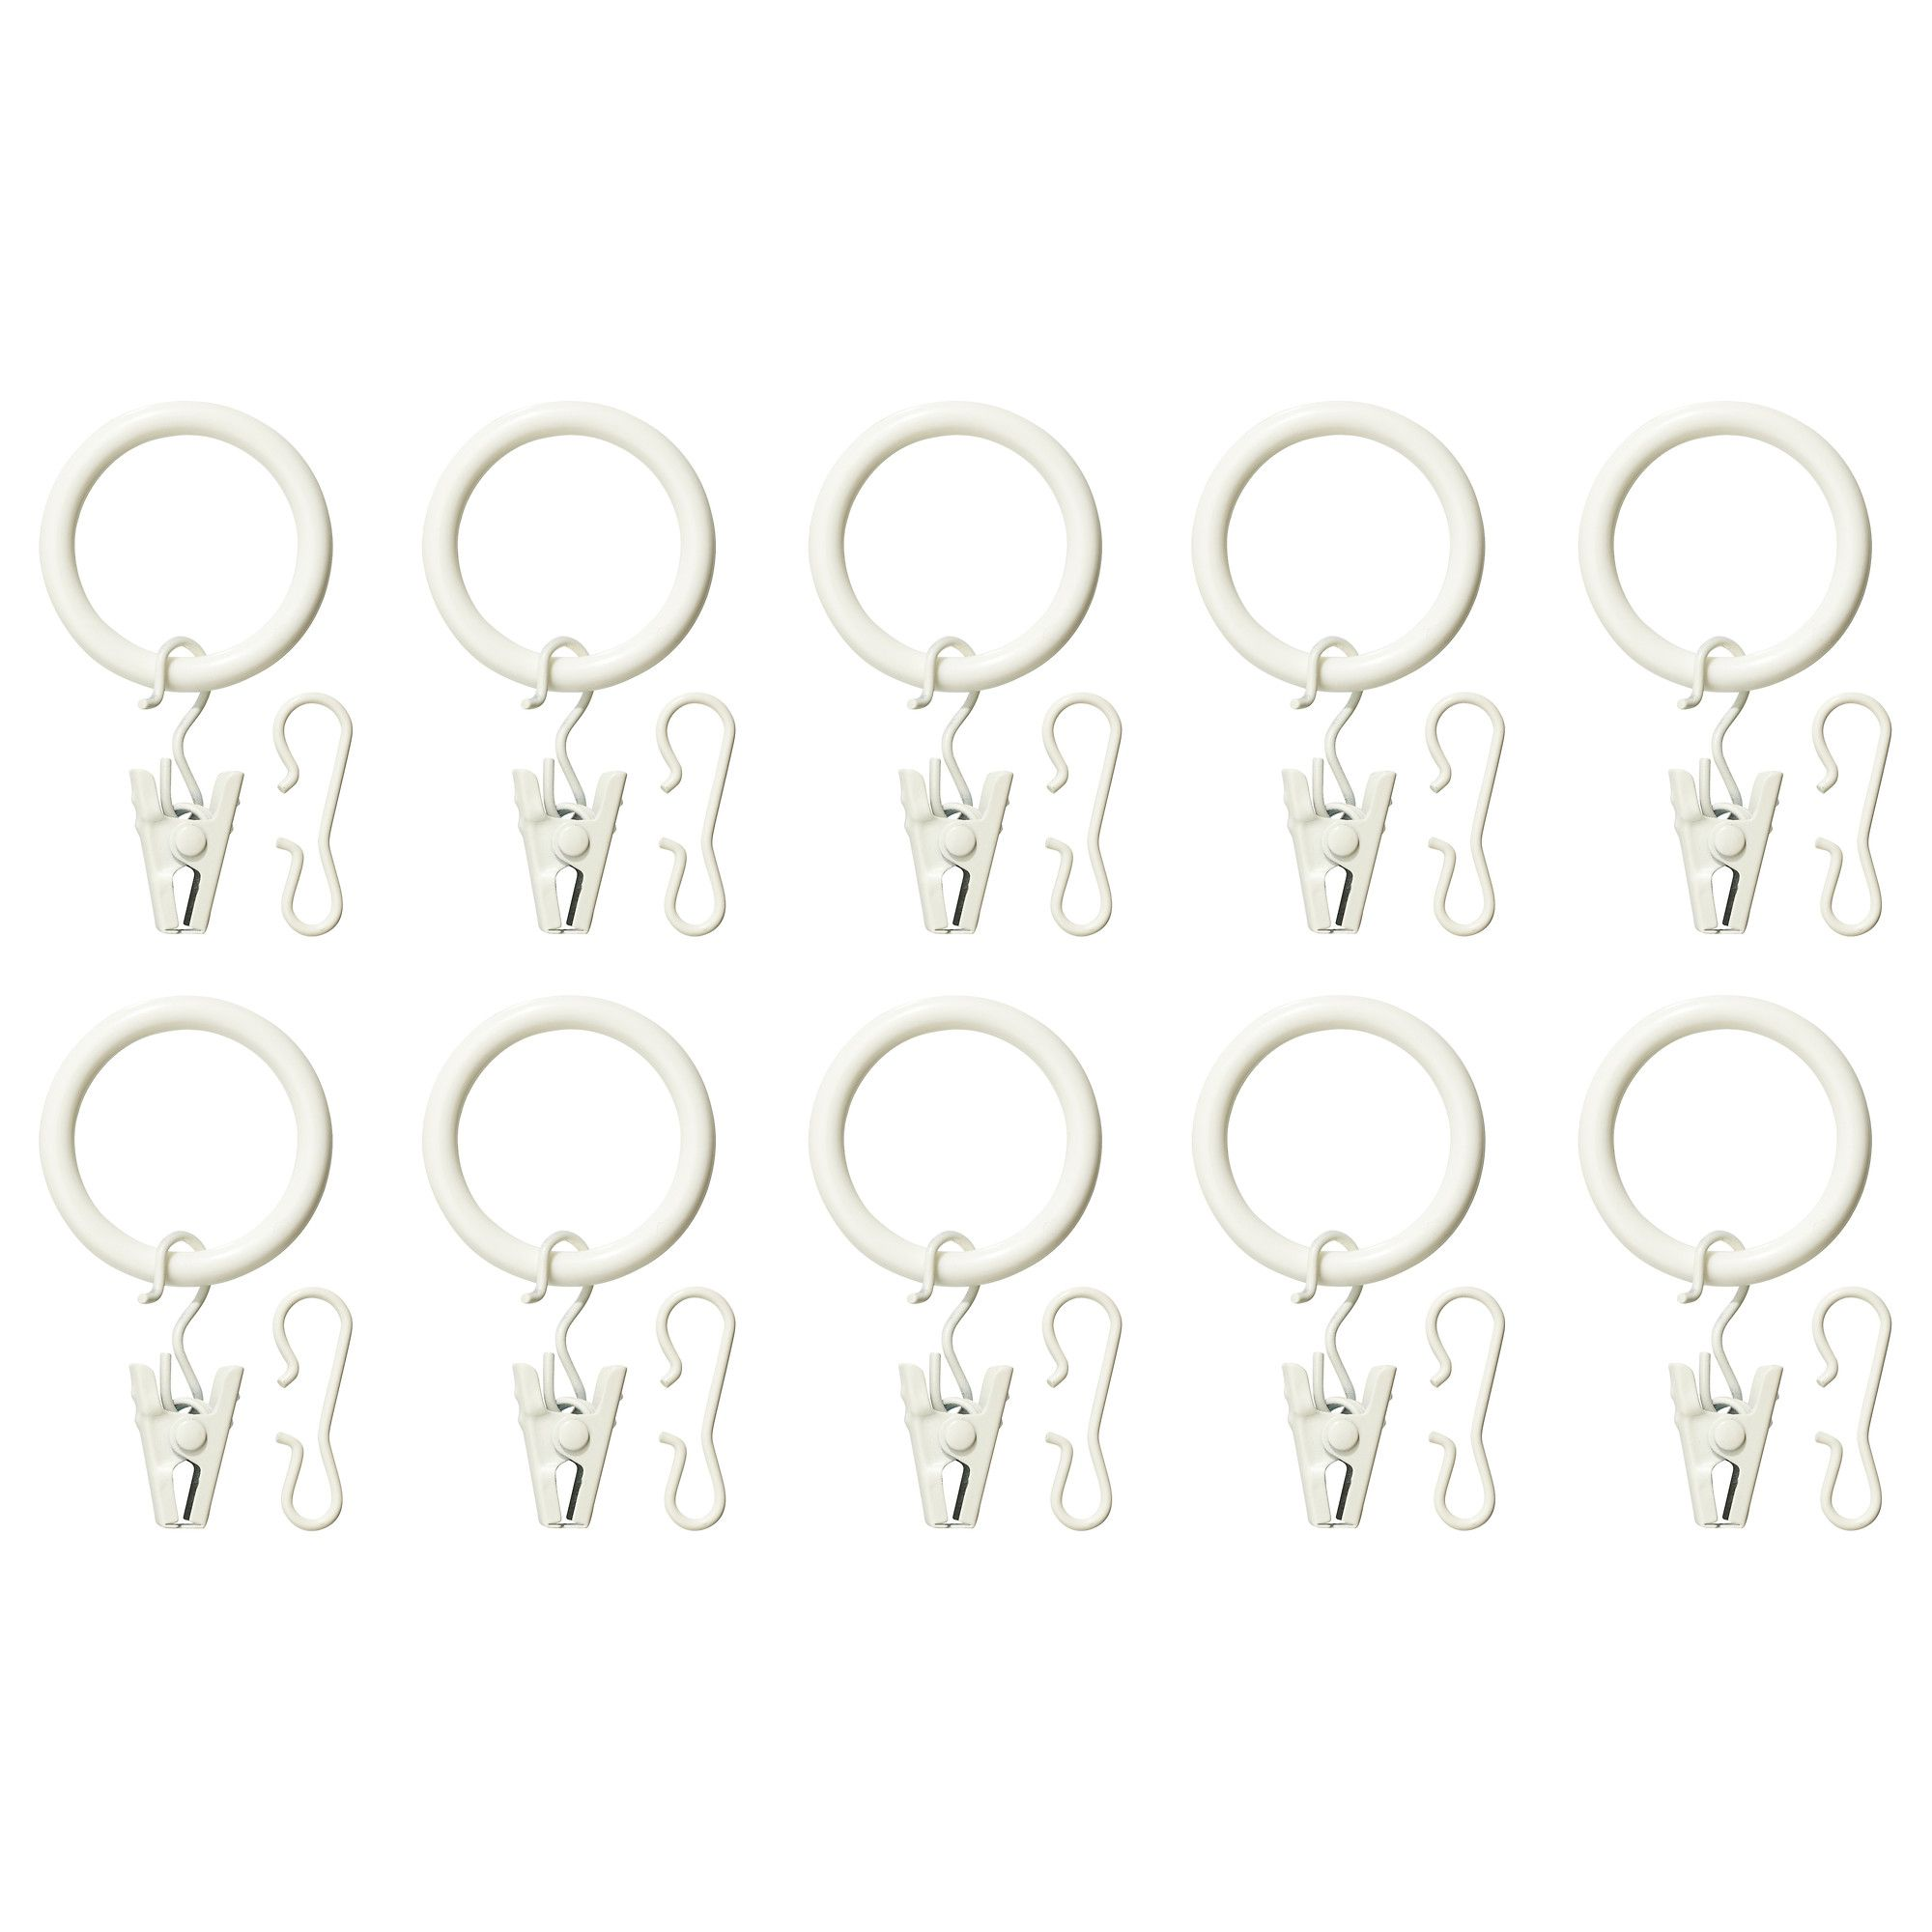 Syrlig curtain ring with clip and hook ikea you can hang your curtains - Syrlig Curtain Ring With Clip And Hook White